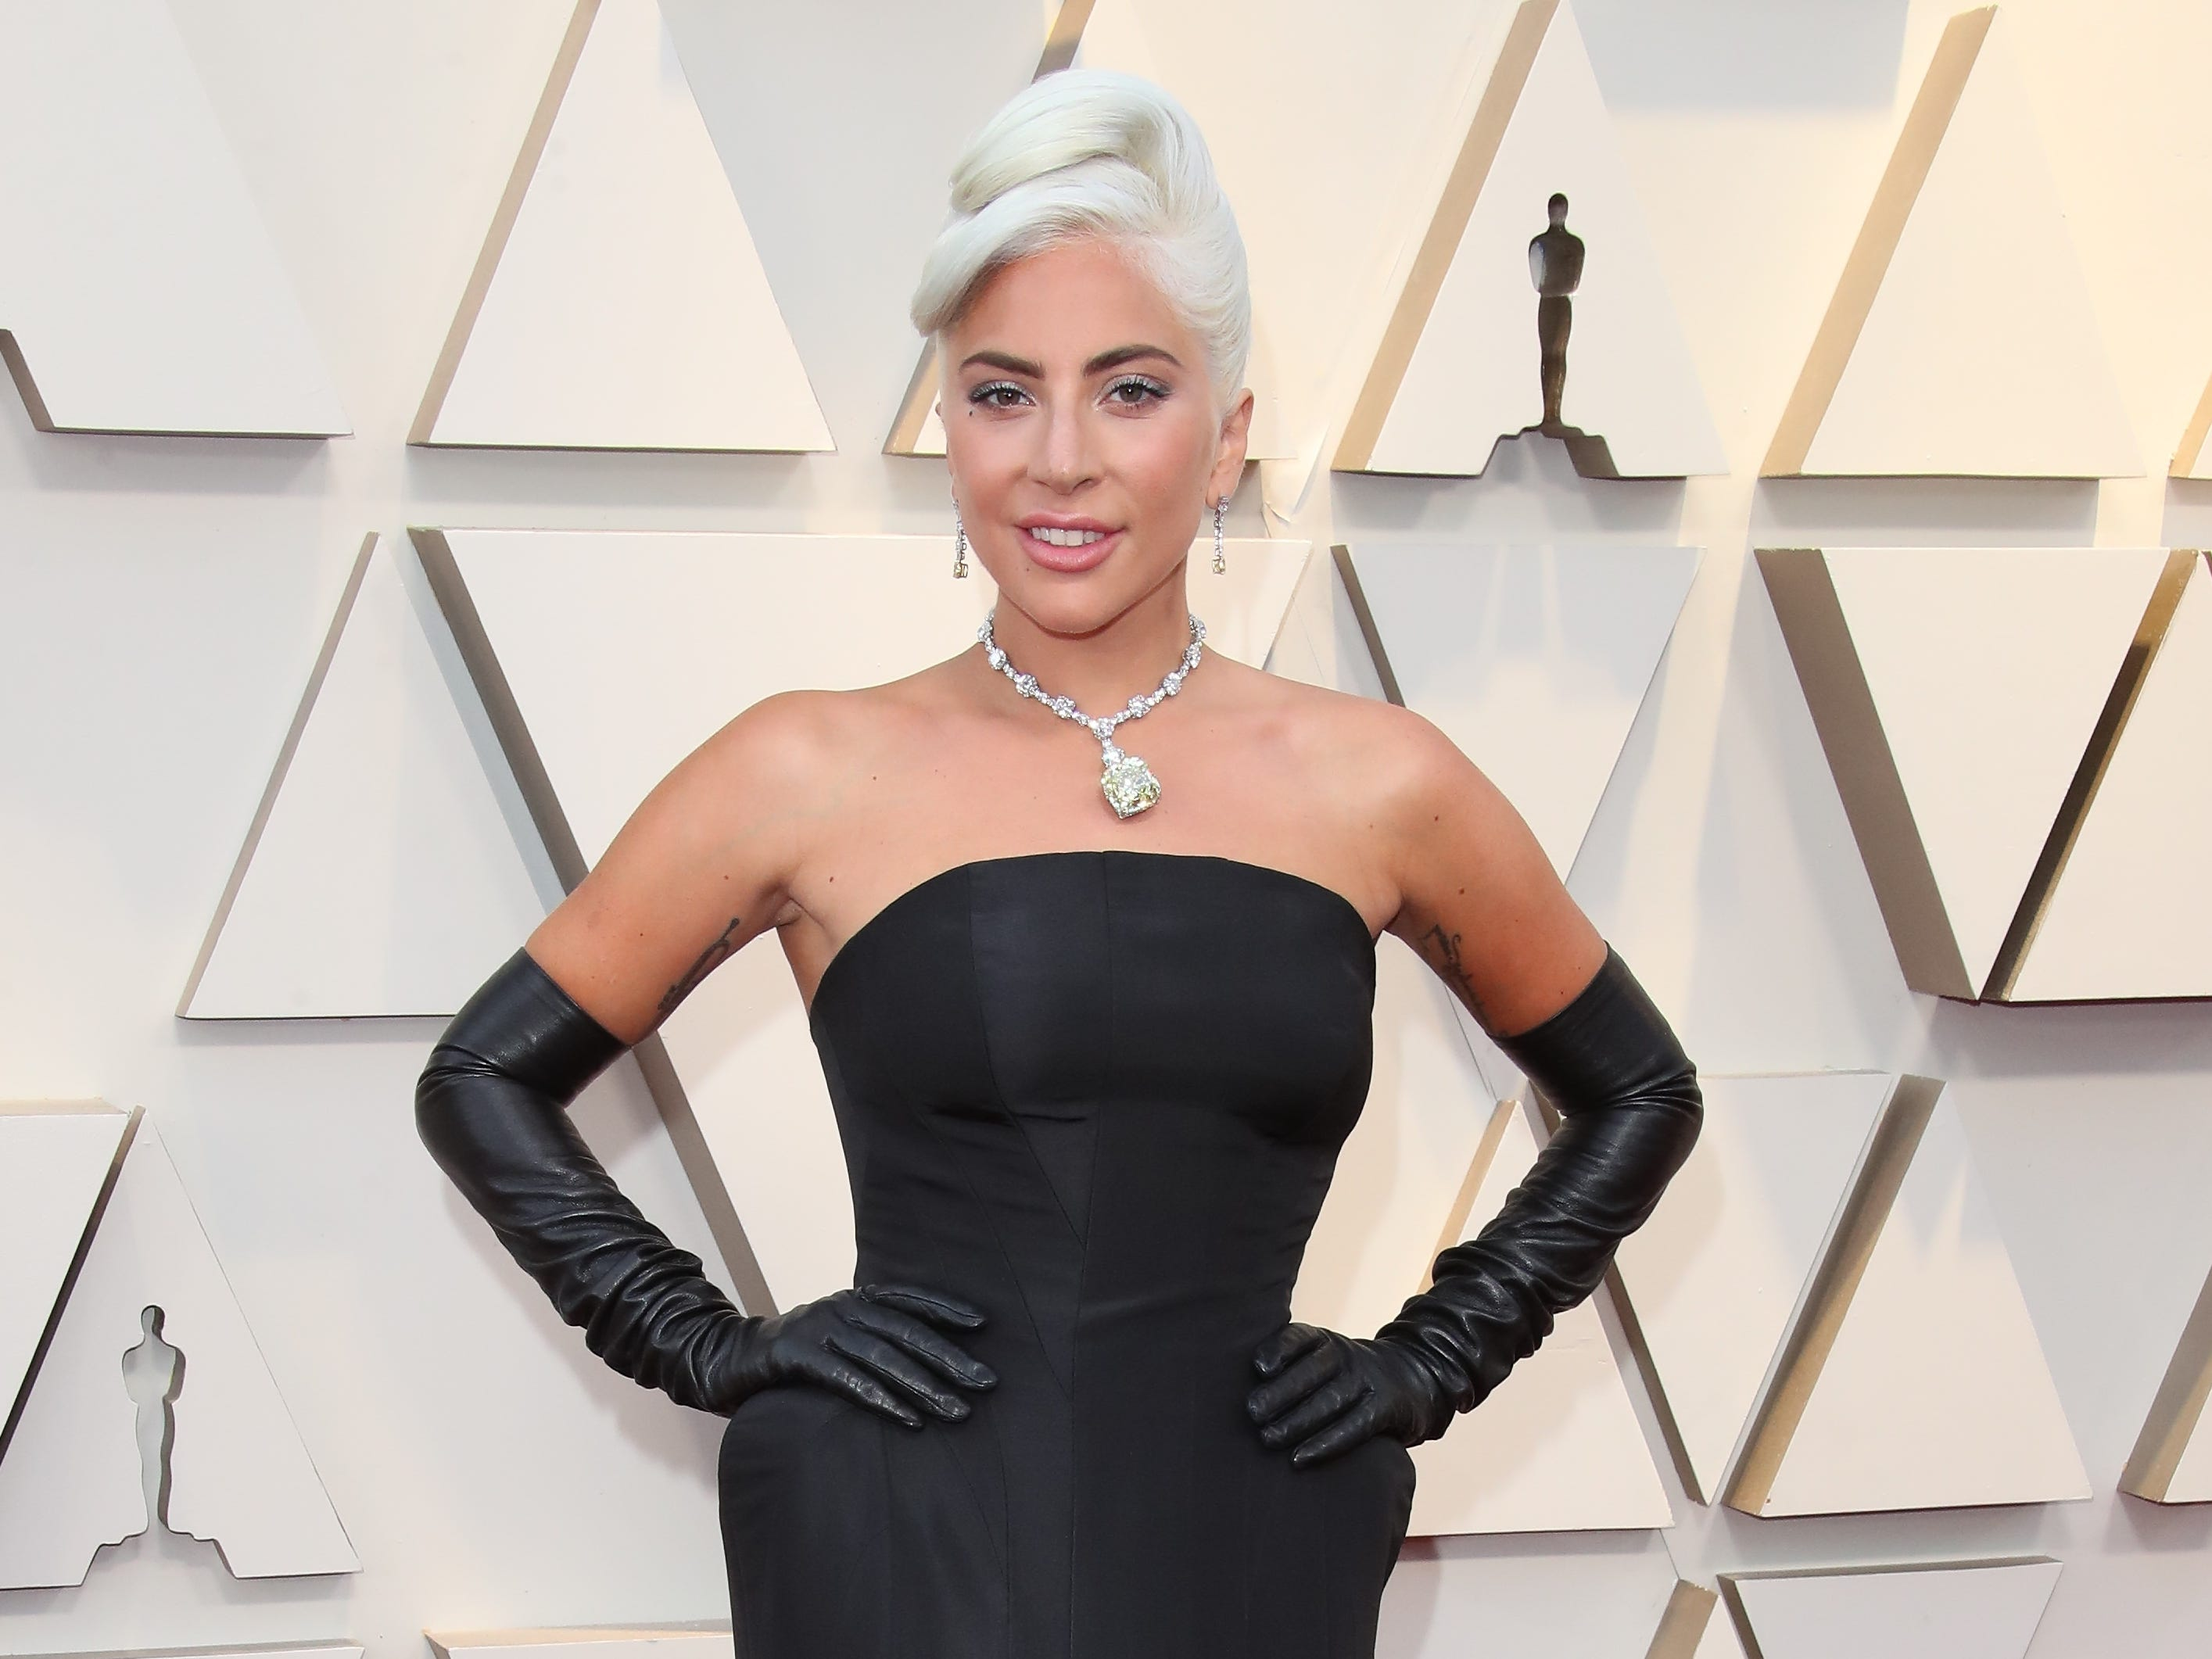 February 24, 2019; Los Angeles, CA, USA; Lady Gaga arrives at the 91st Academy Awards at the Dolby Theatre. Mandatory Credit: Dan MacMedan-USA TODAY NETWORK (Via OlyDrop)